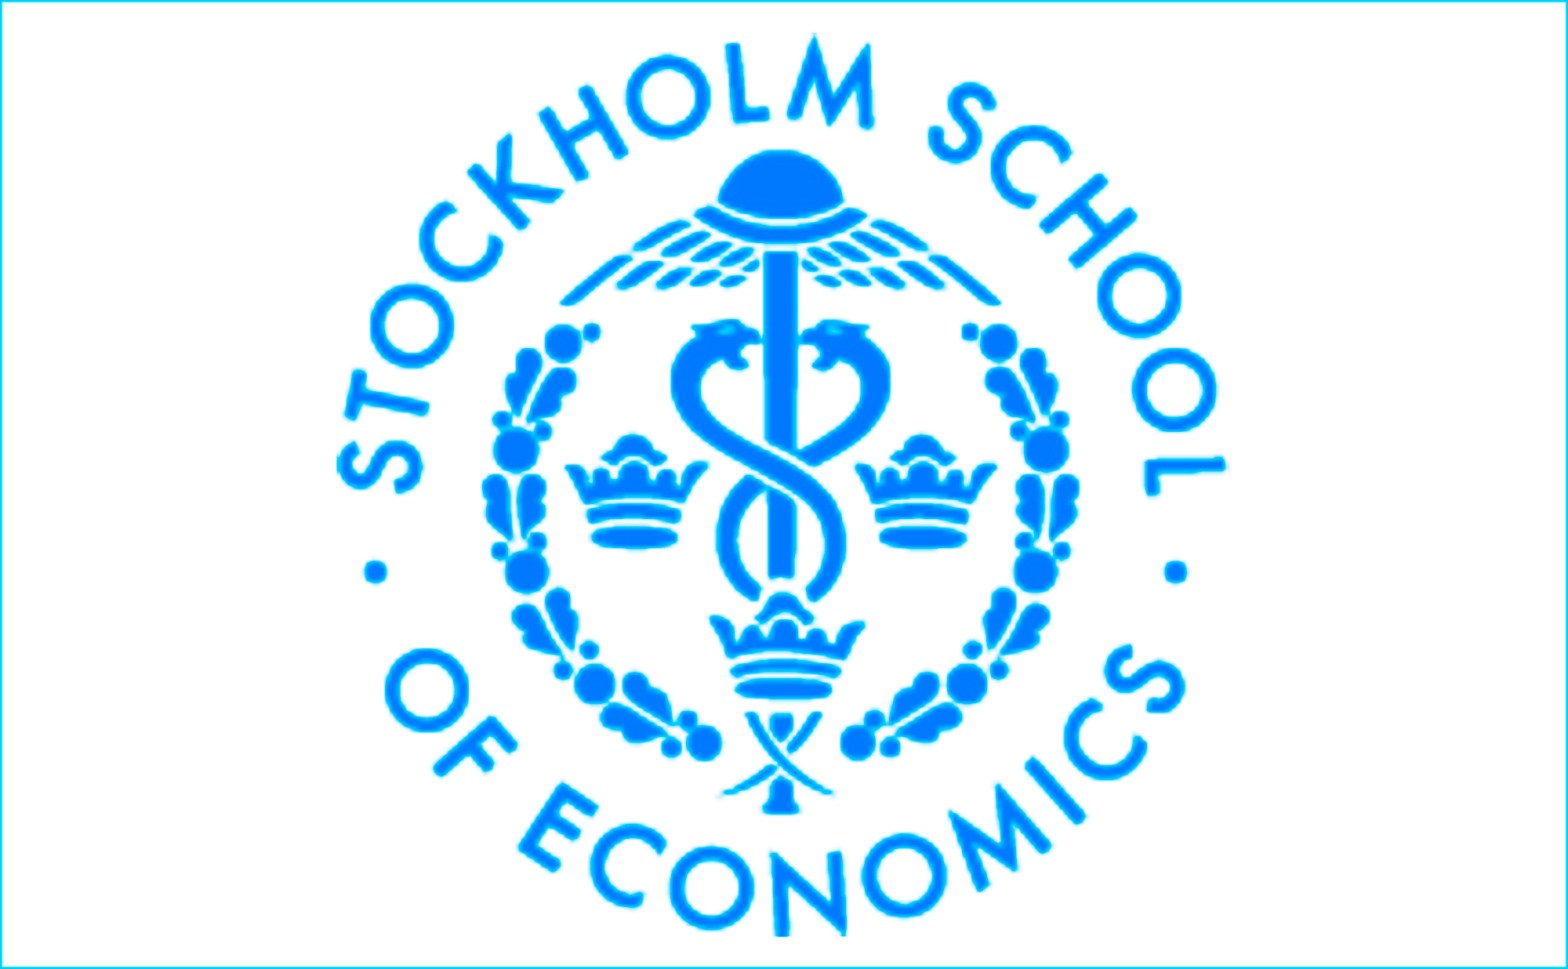 Gerhard Fasol at Stockholm School of Economics